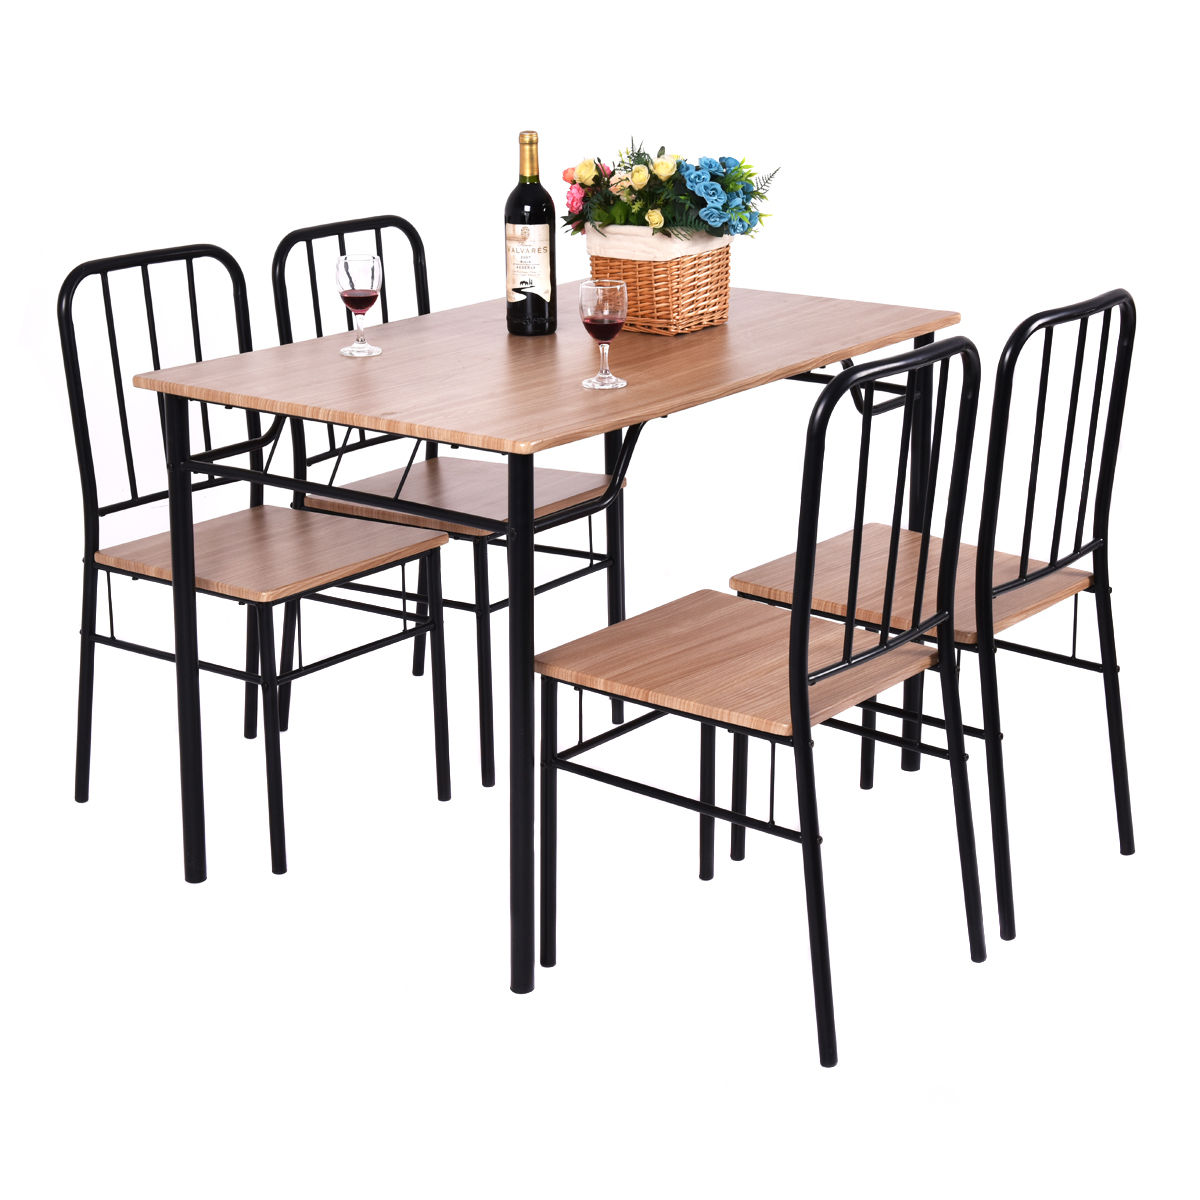 Kitchen Table And Chairs Sets: Aliexpress.com : Buy Giantex 5 Piece Dining Set Table And